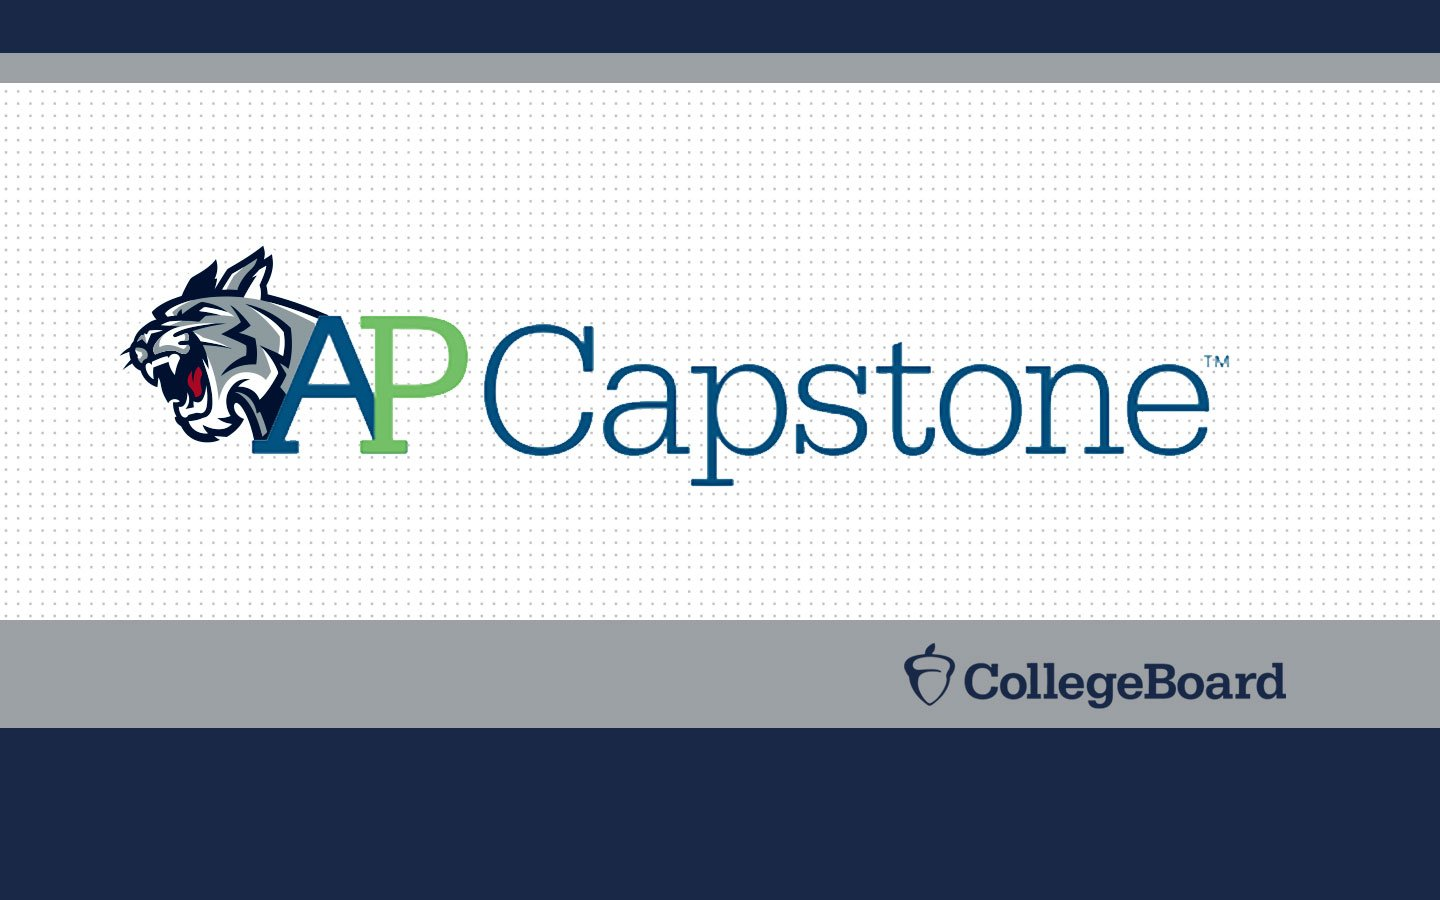 AP Capstone™ Program